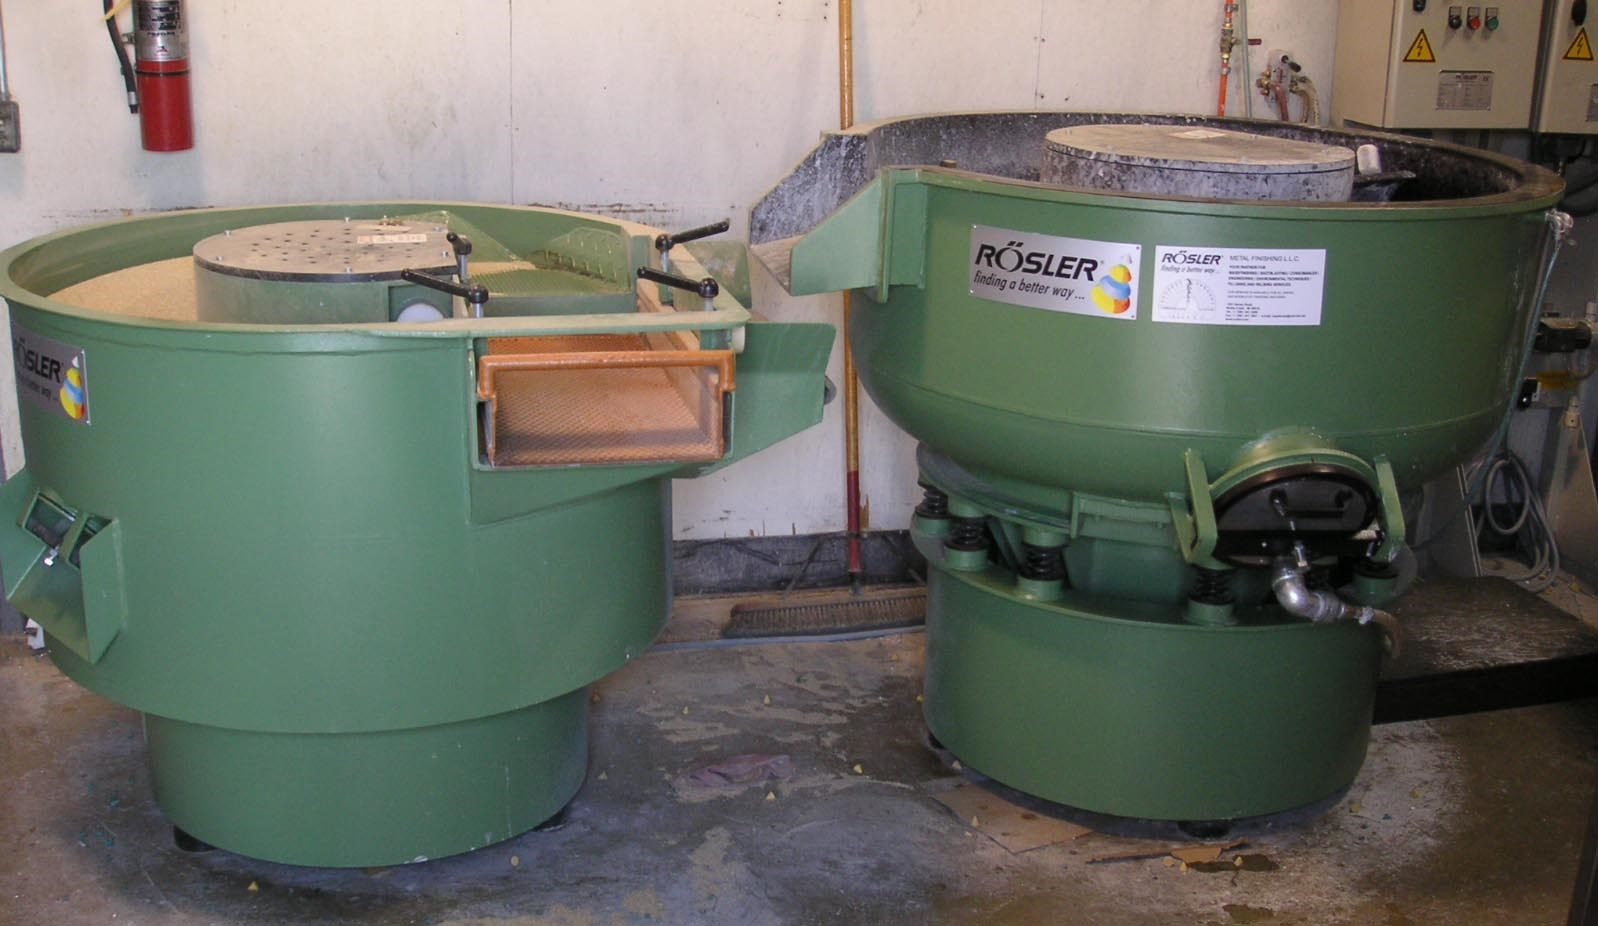 2005 Rosler R220 EC Rotary Vibrator with RT150 Dryer